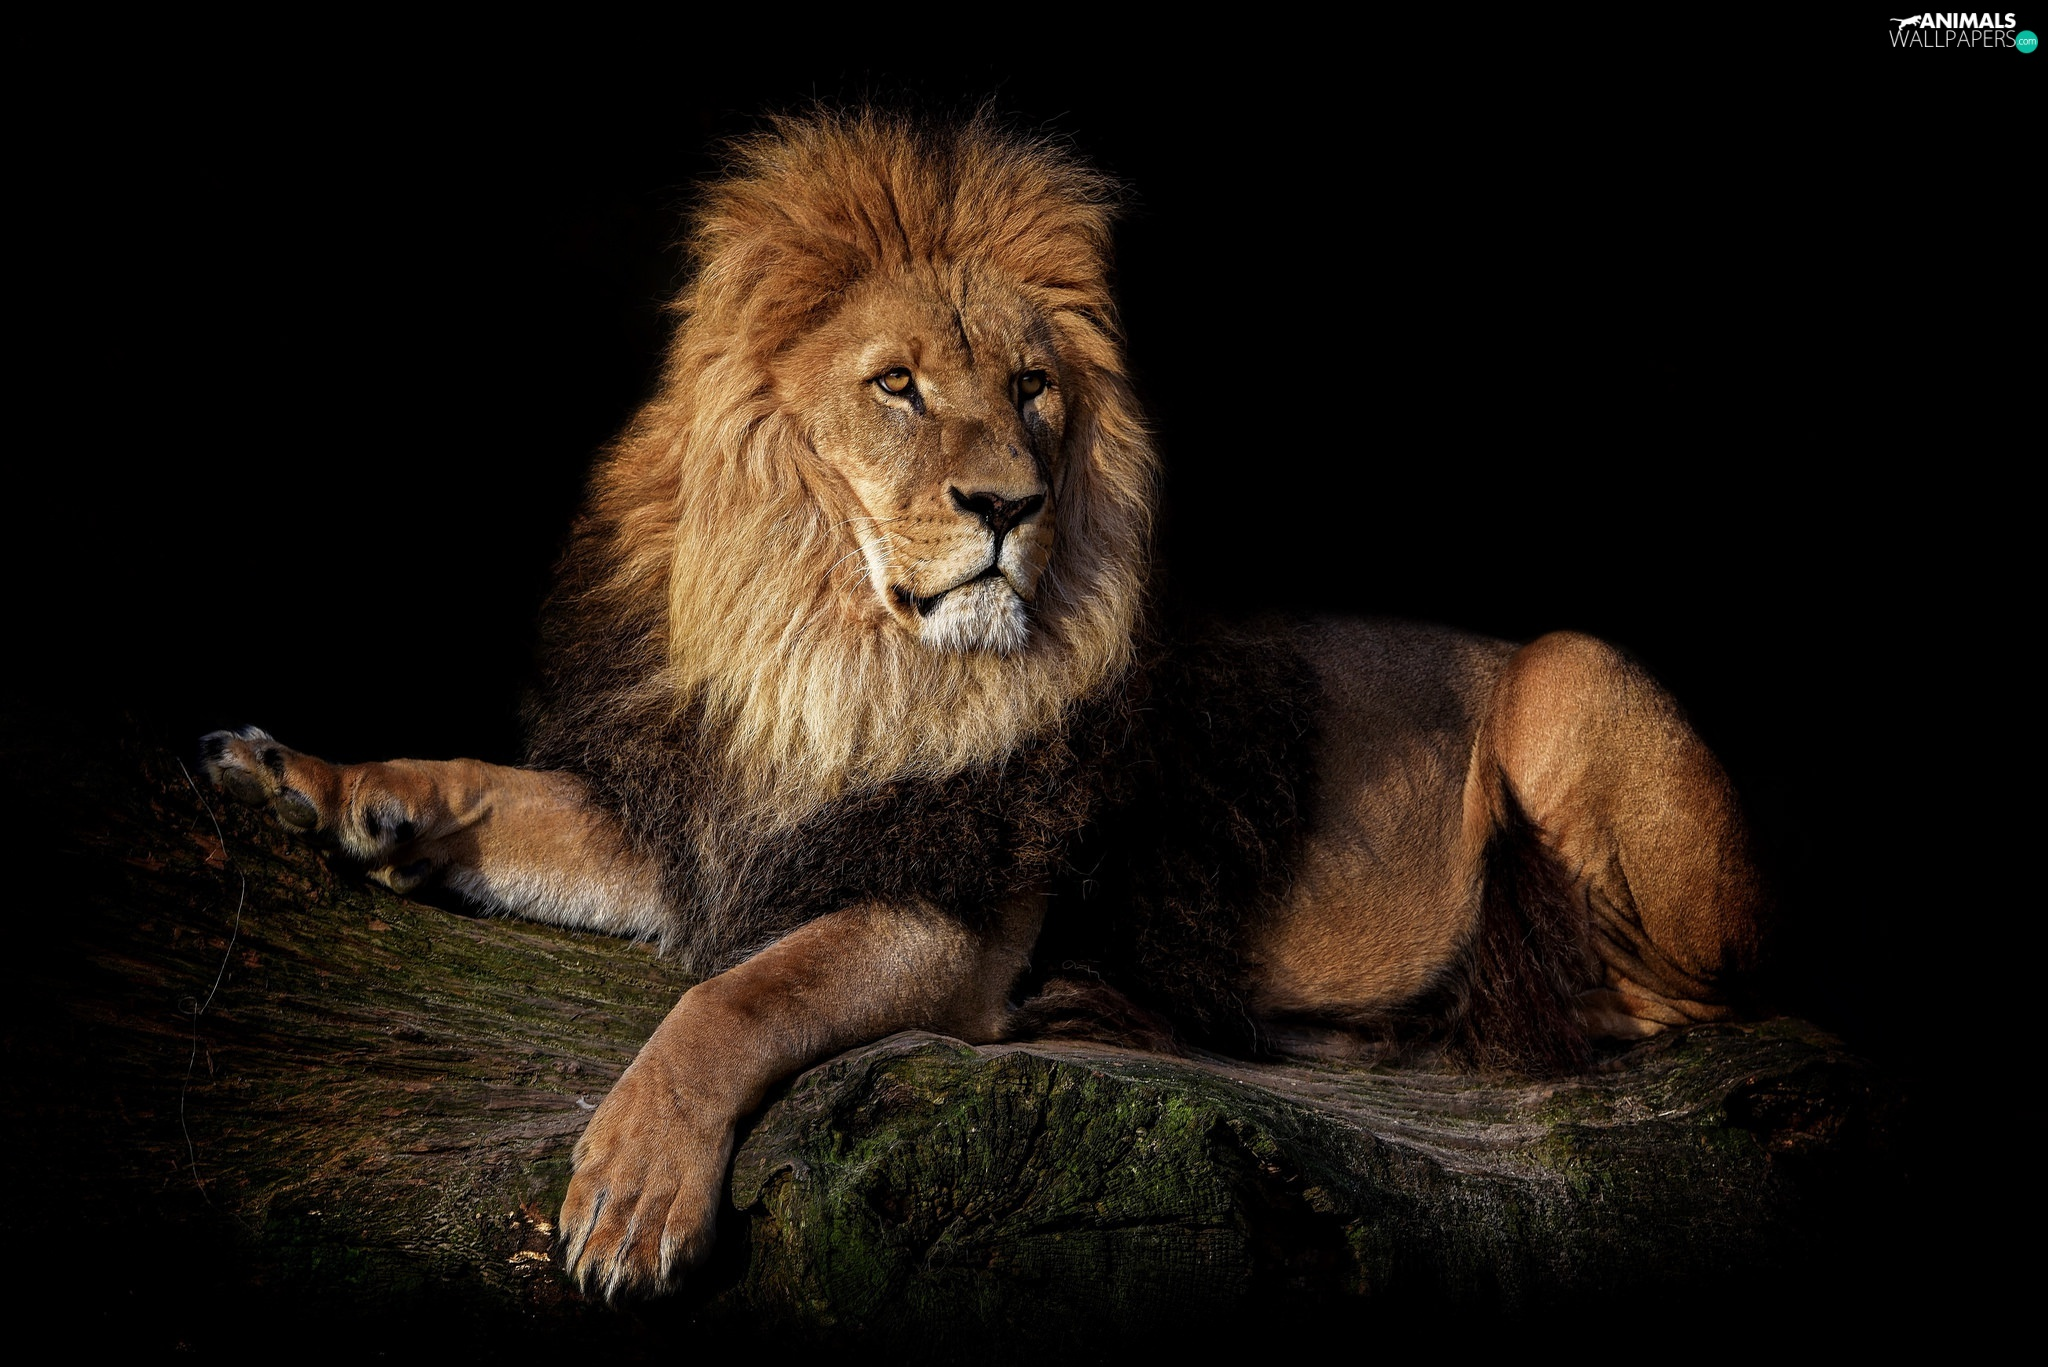 Lion, dark, background, log